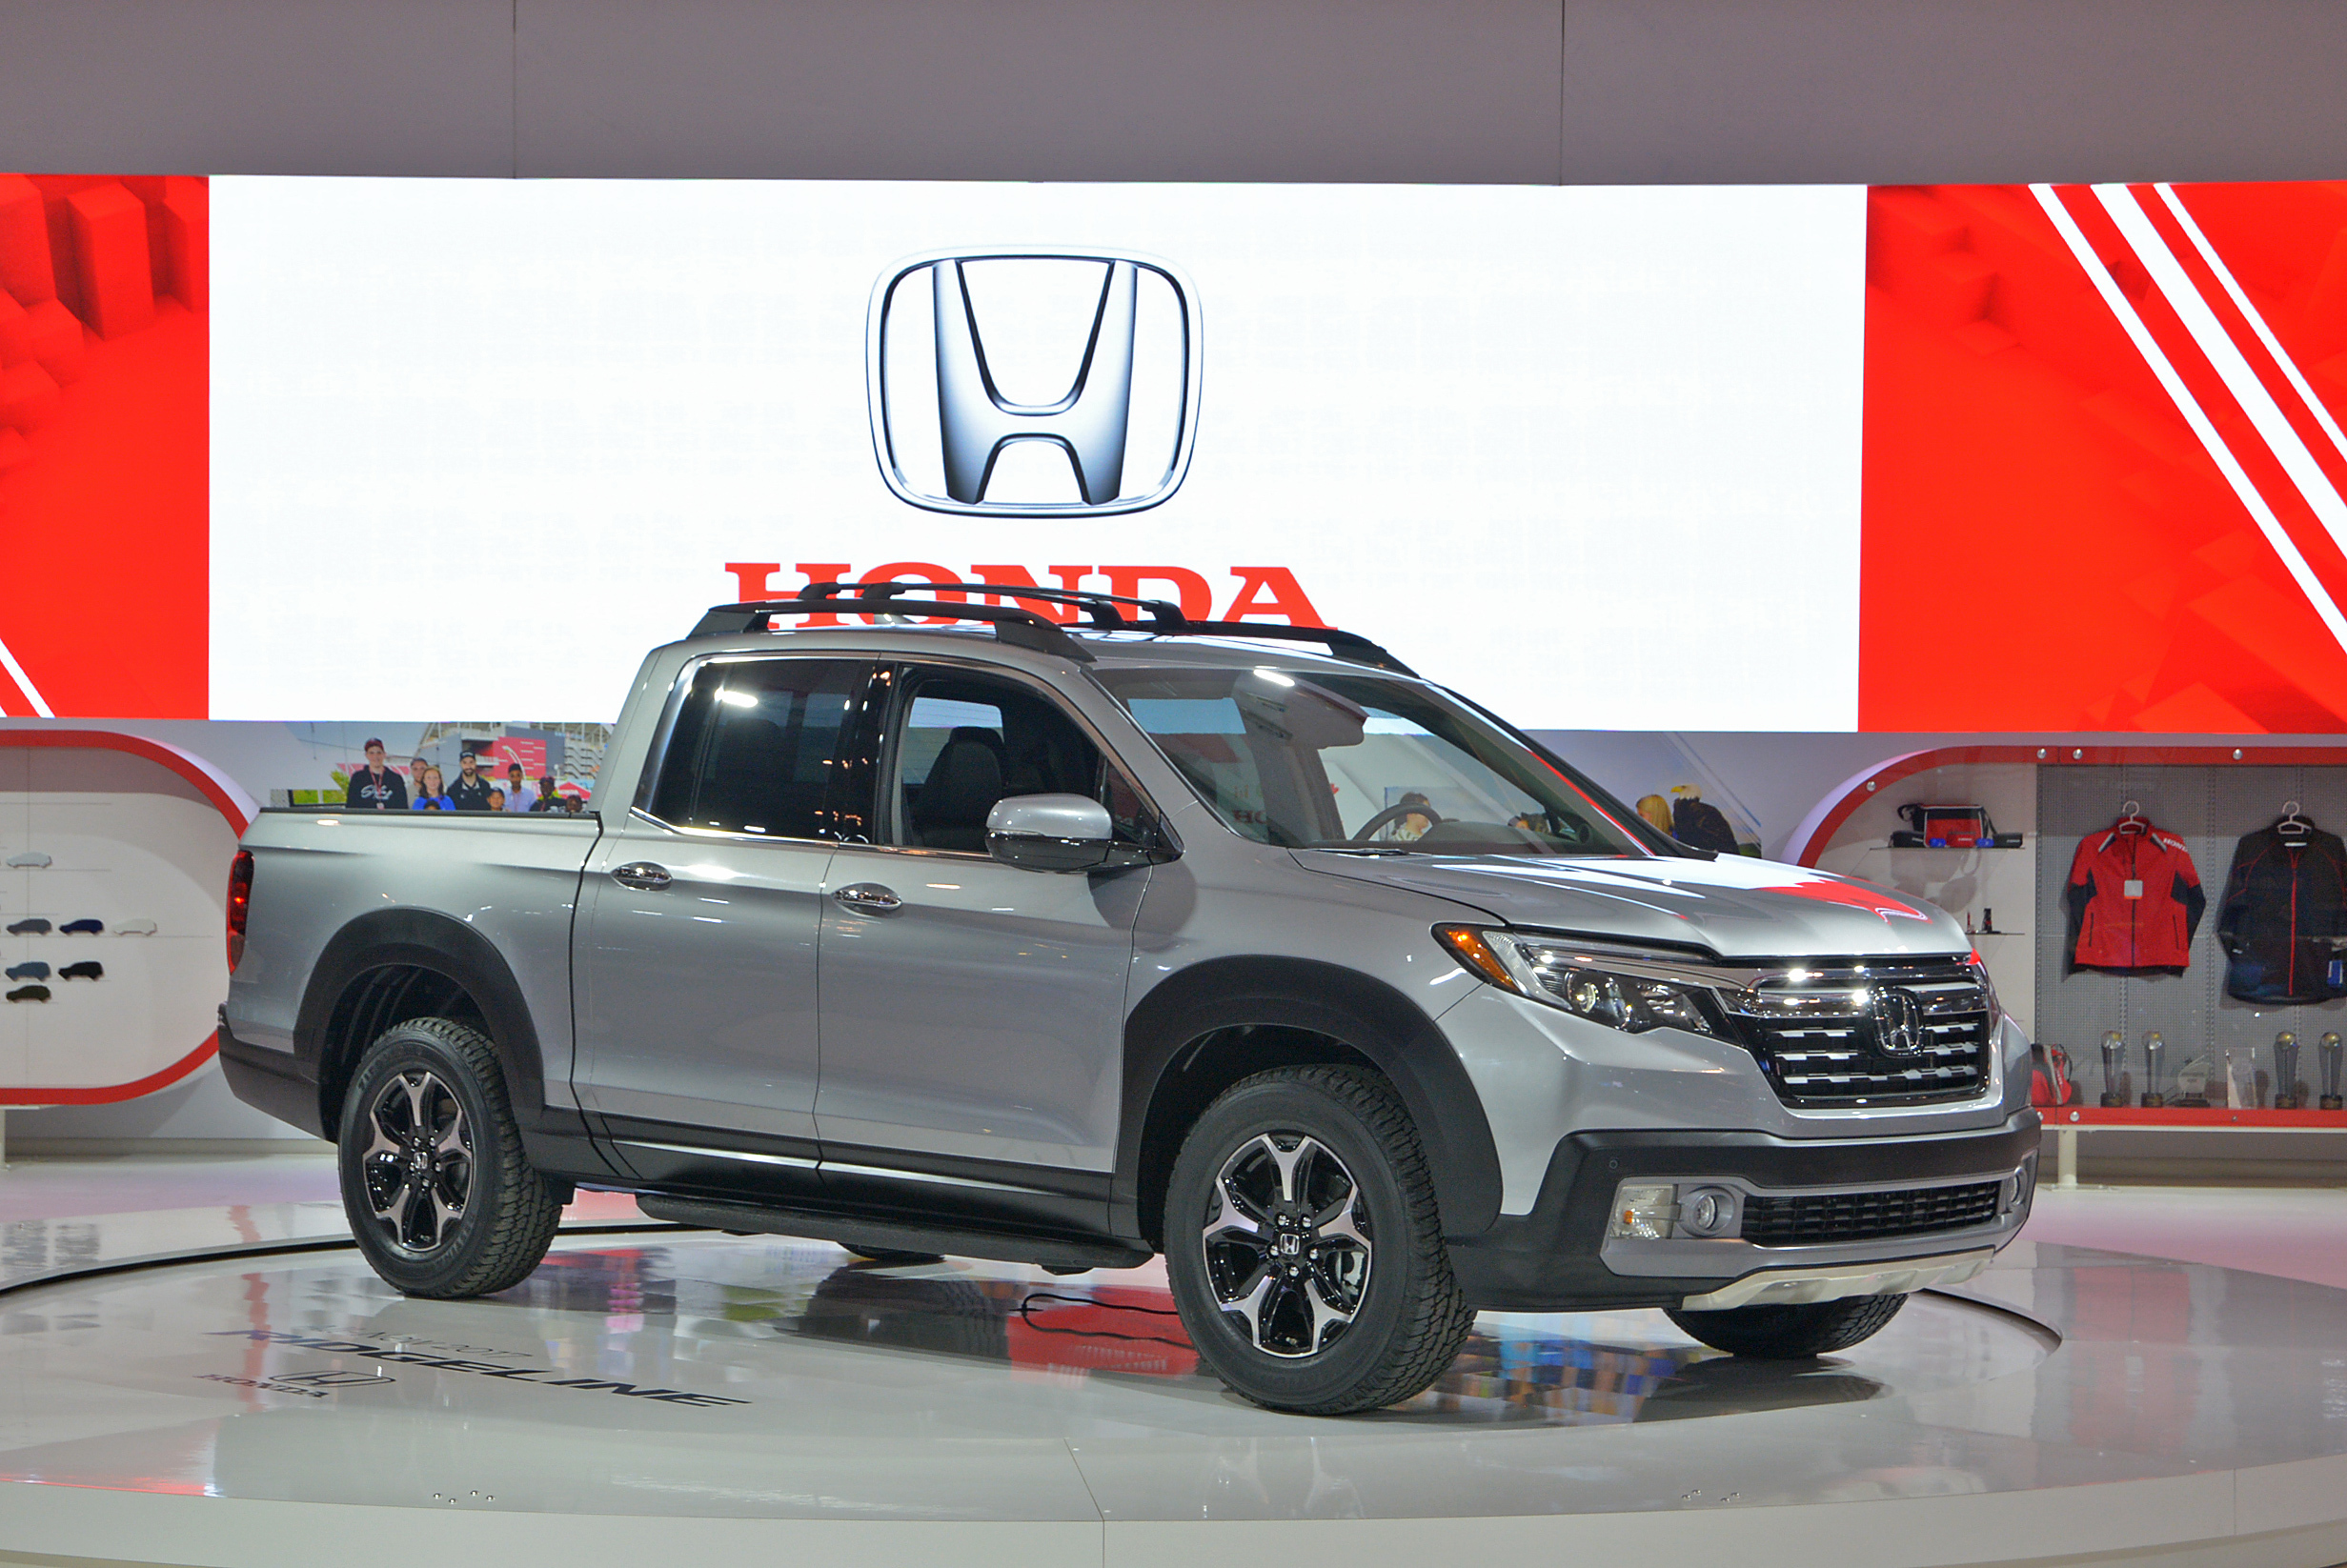 All New 2017 Honda Ridgeline Pickup Truck Makes Canadian Debut At 2016 International Auto Show Business Wire